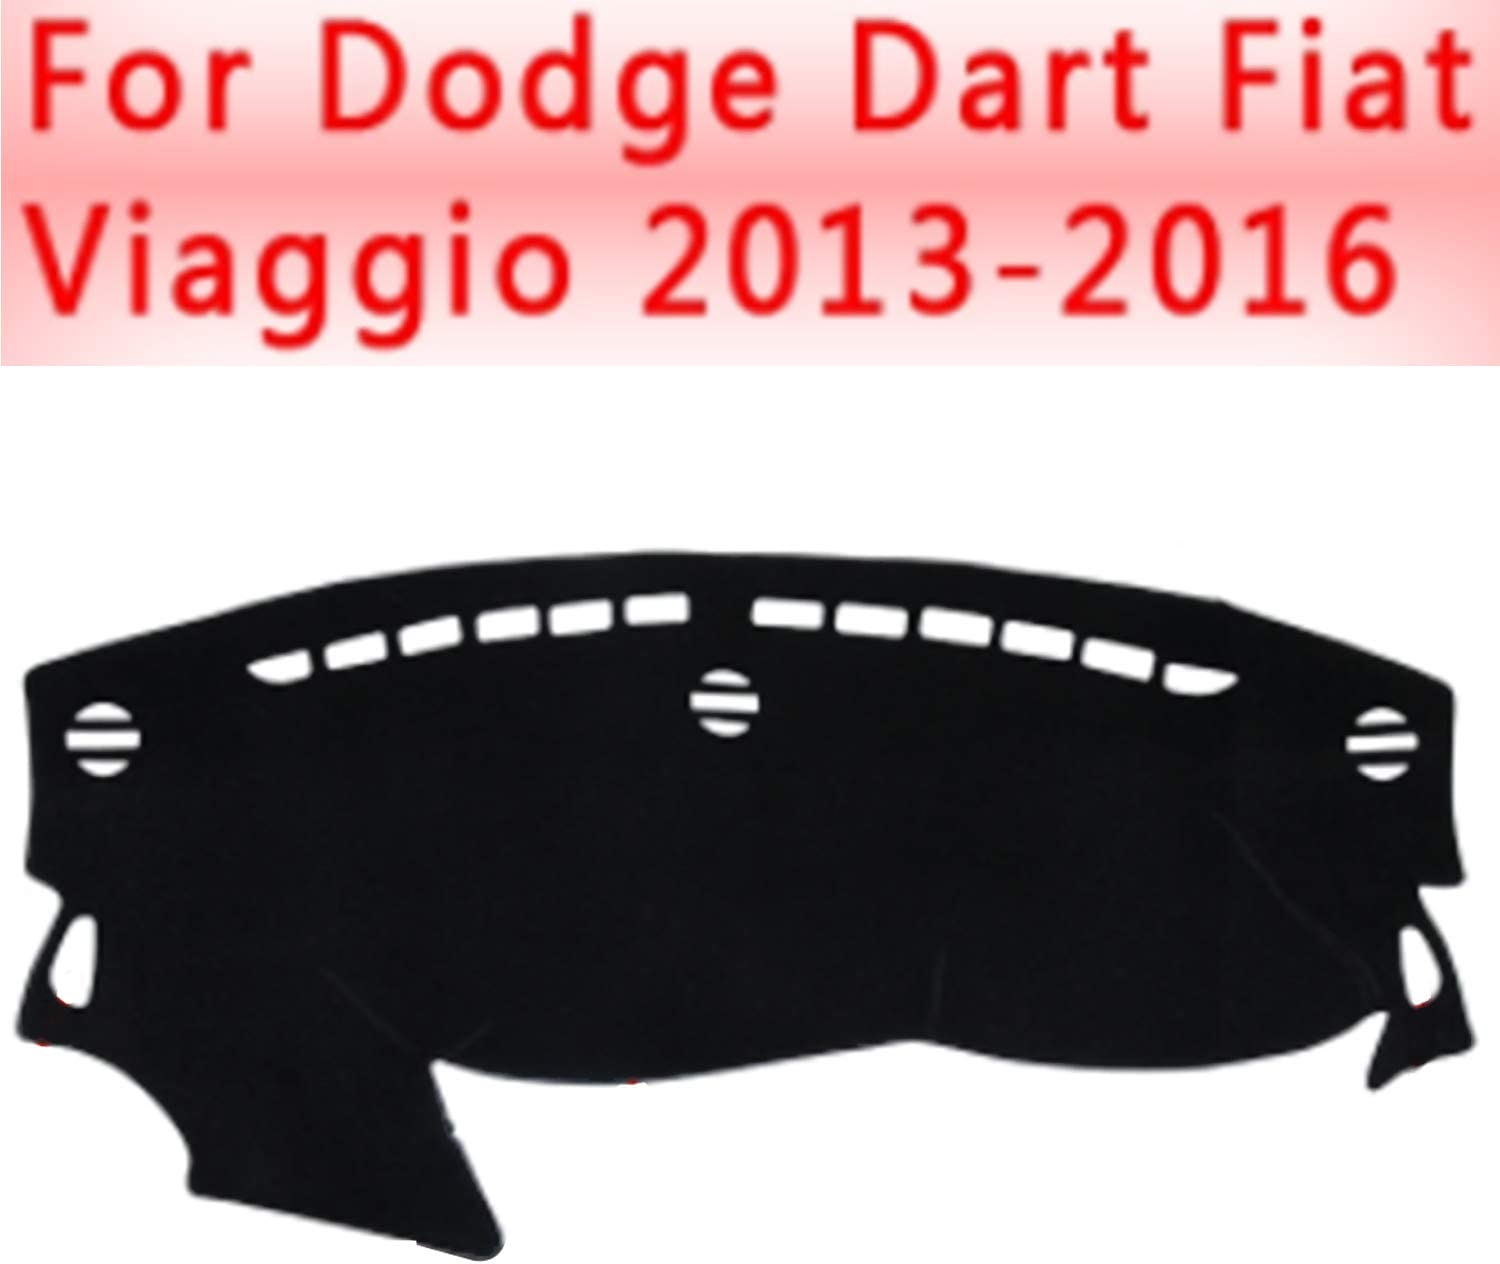 Backyard Car Dashboard Cover Dash Pad Ultra-Cheap Deals for Mat Dodge Carpet All items in the store